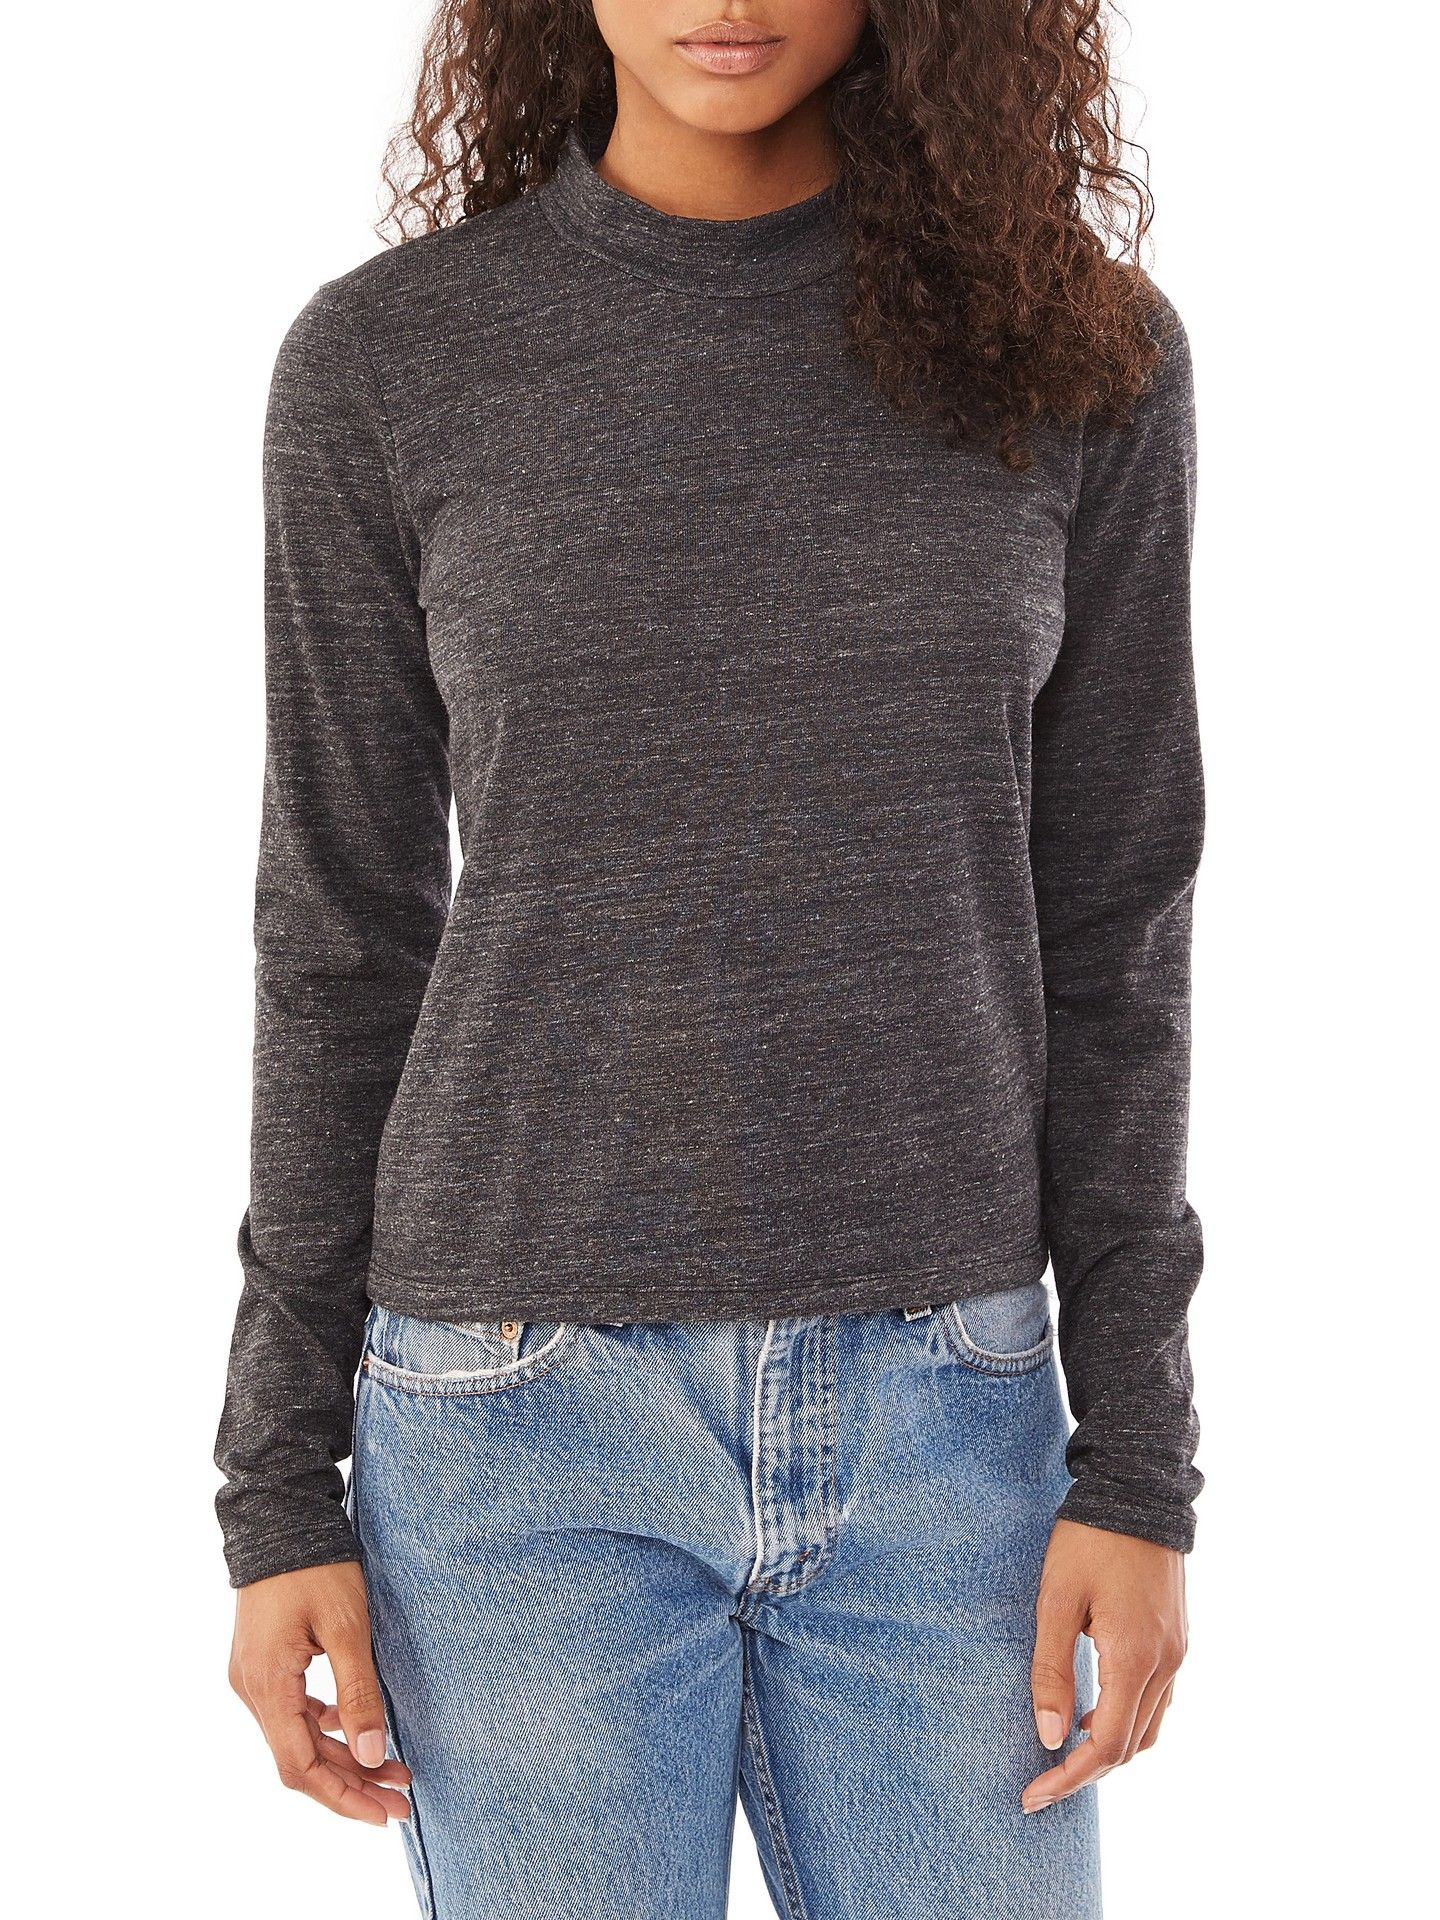 Locals Only Top - 61312E1